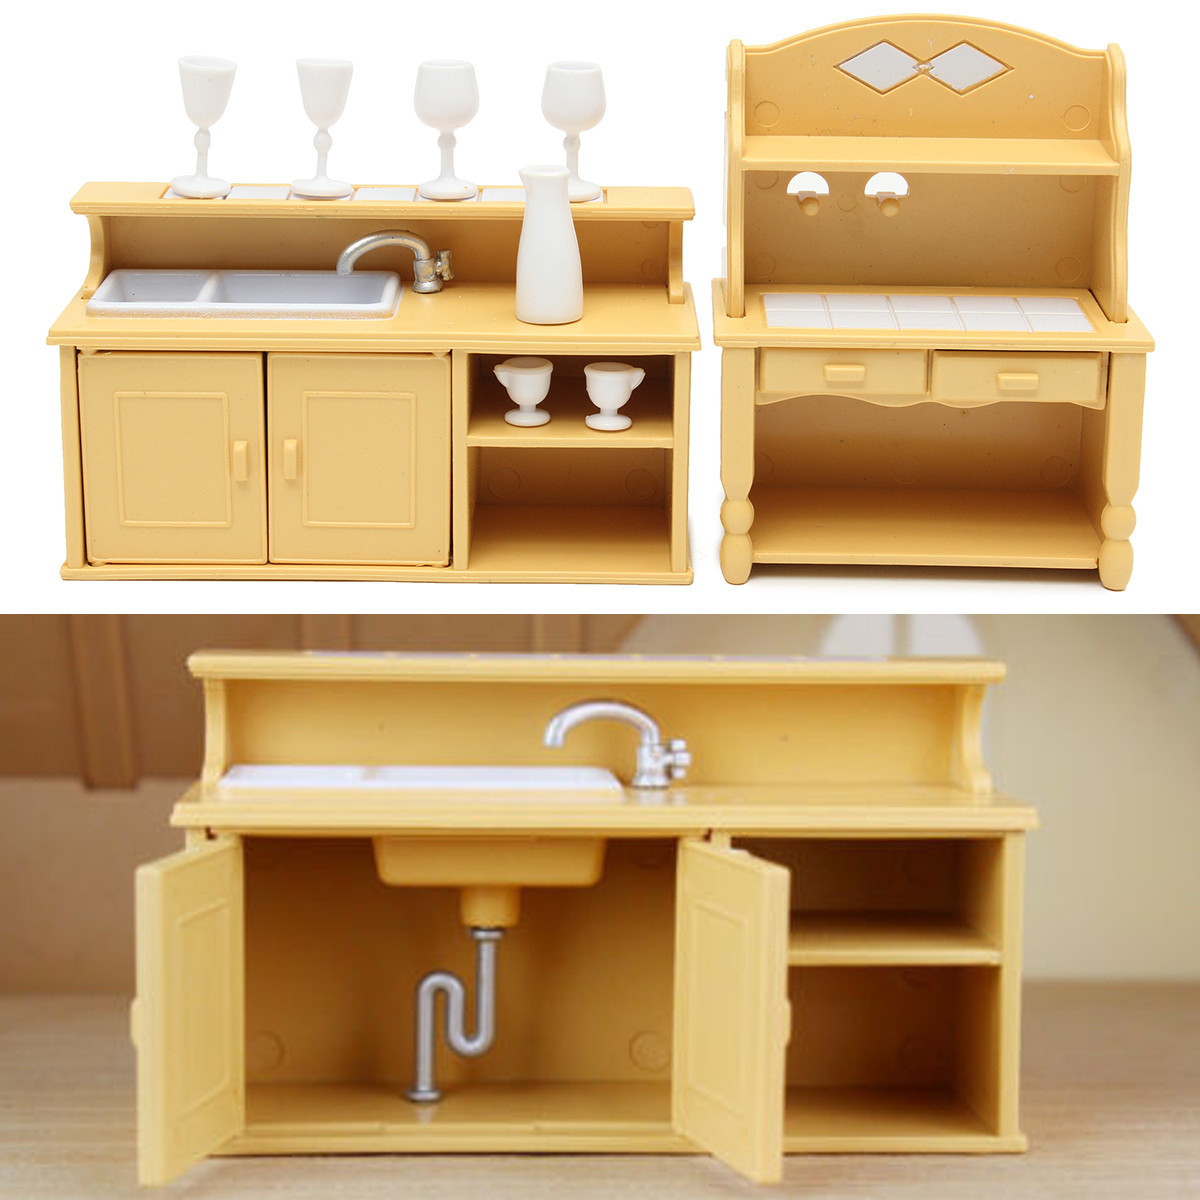 Meigar Kitchen Cabinets Set For Sylvanian Families Calico Critters Dolls